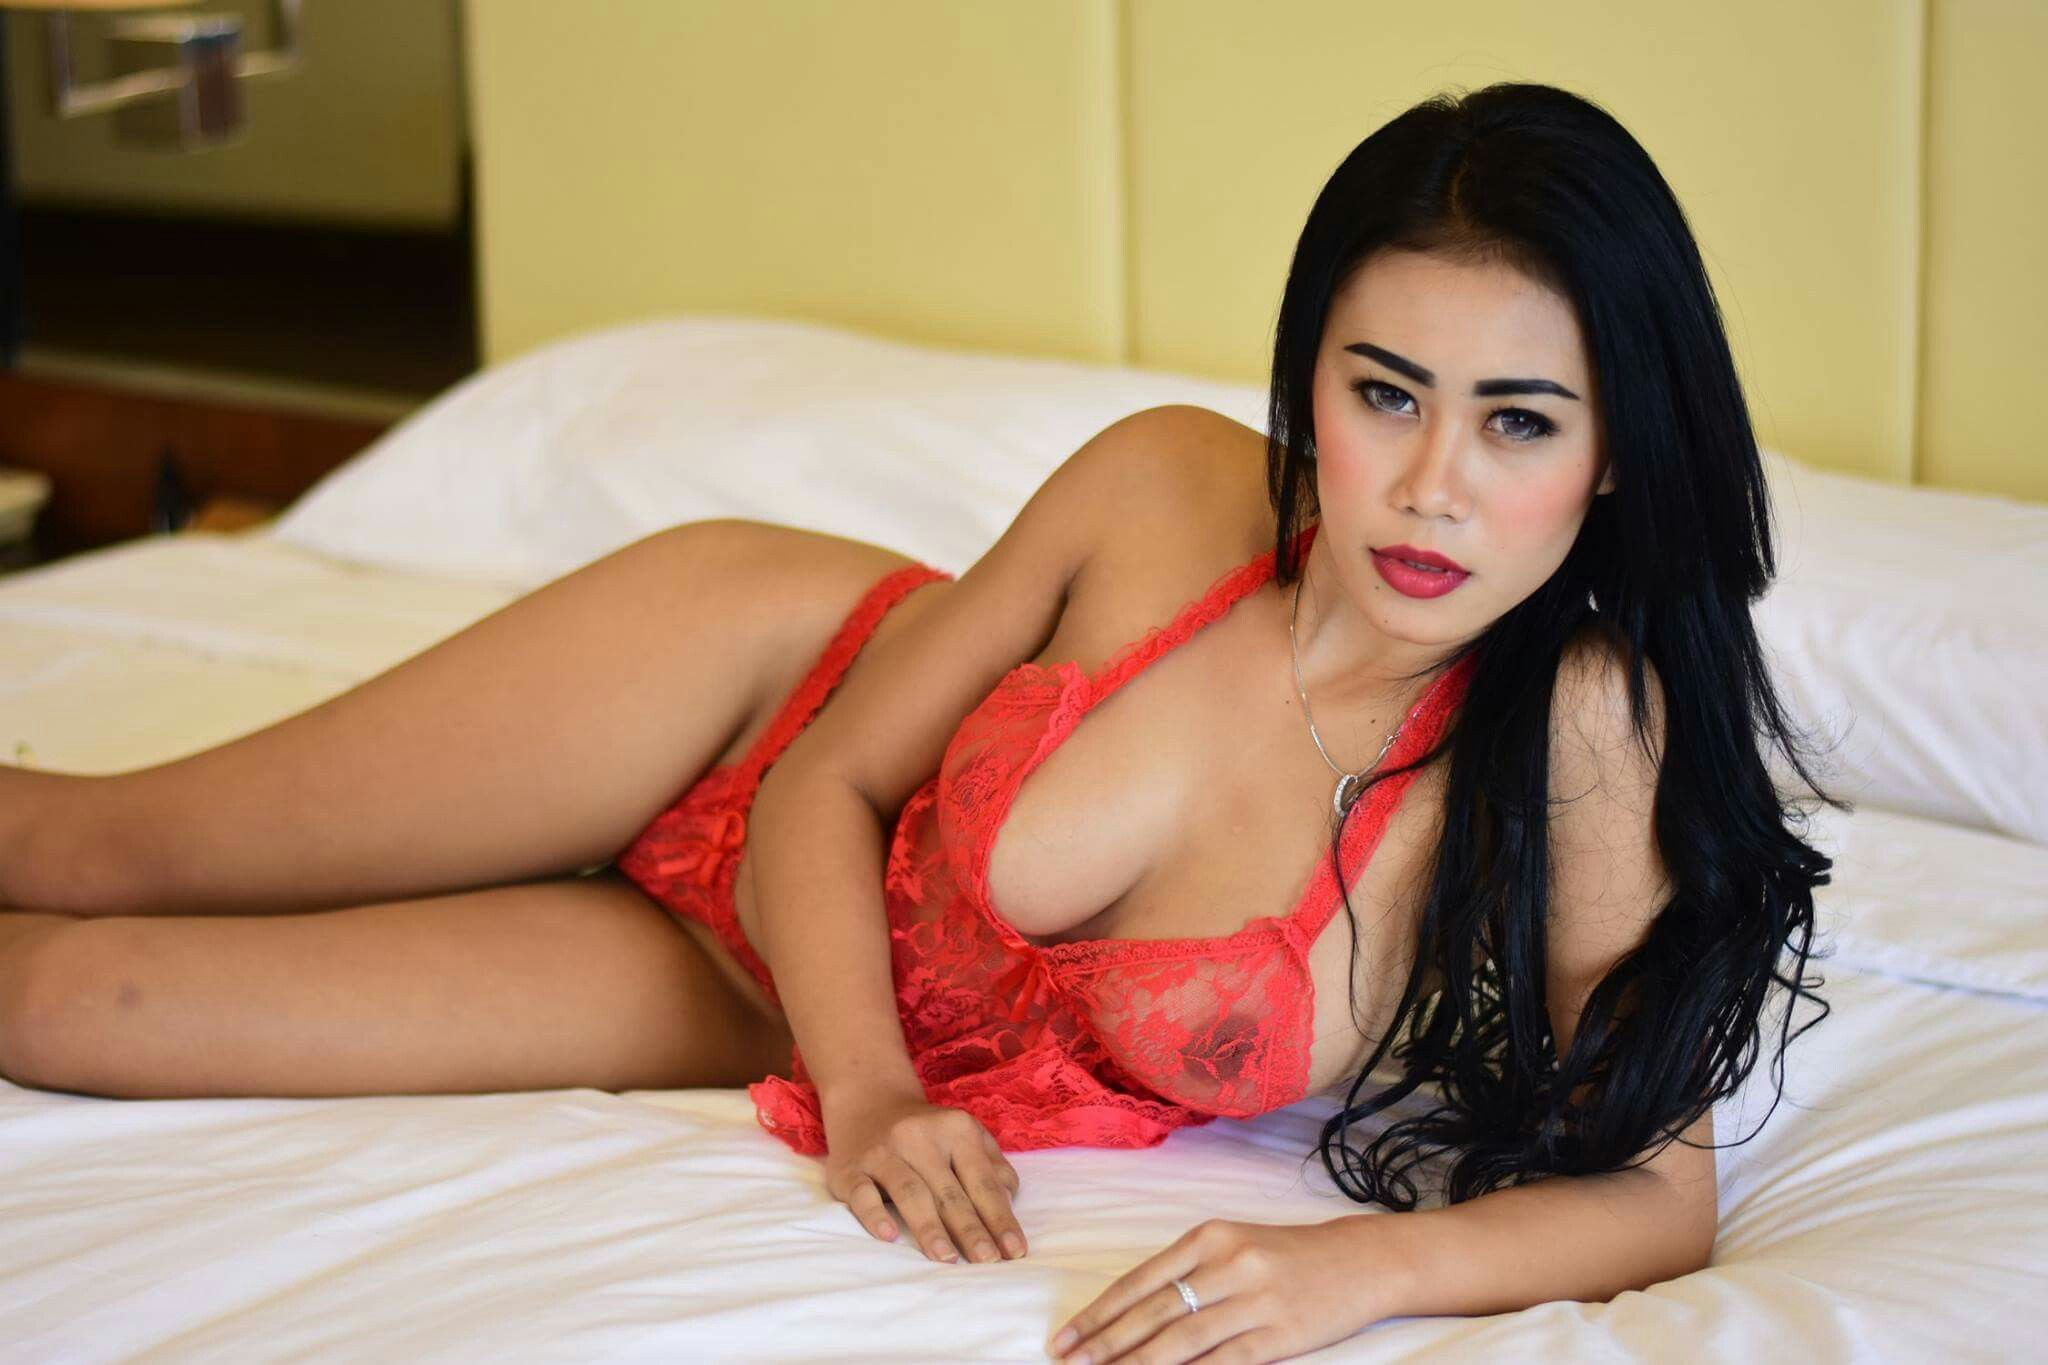 Modell Naken Sexy Indonesia